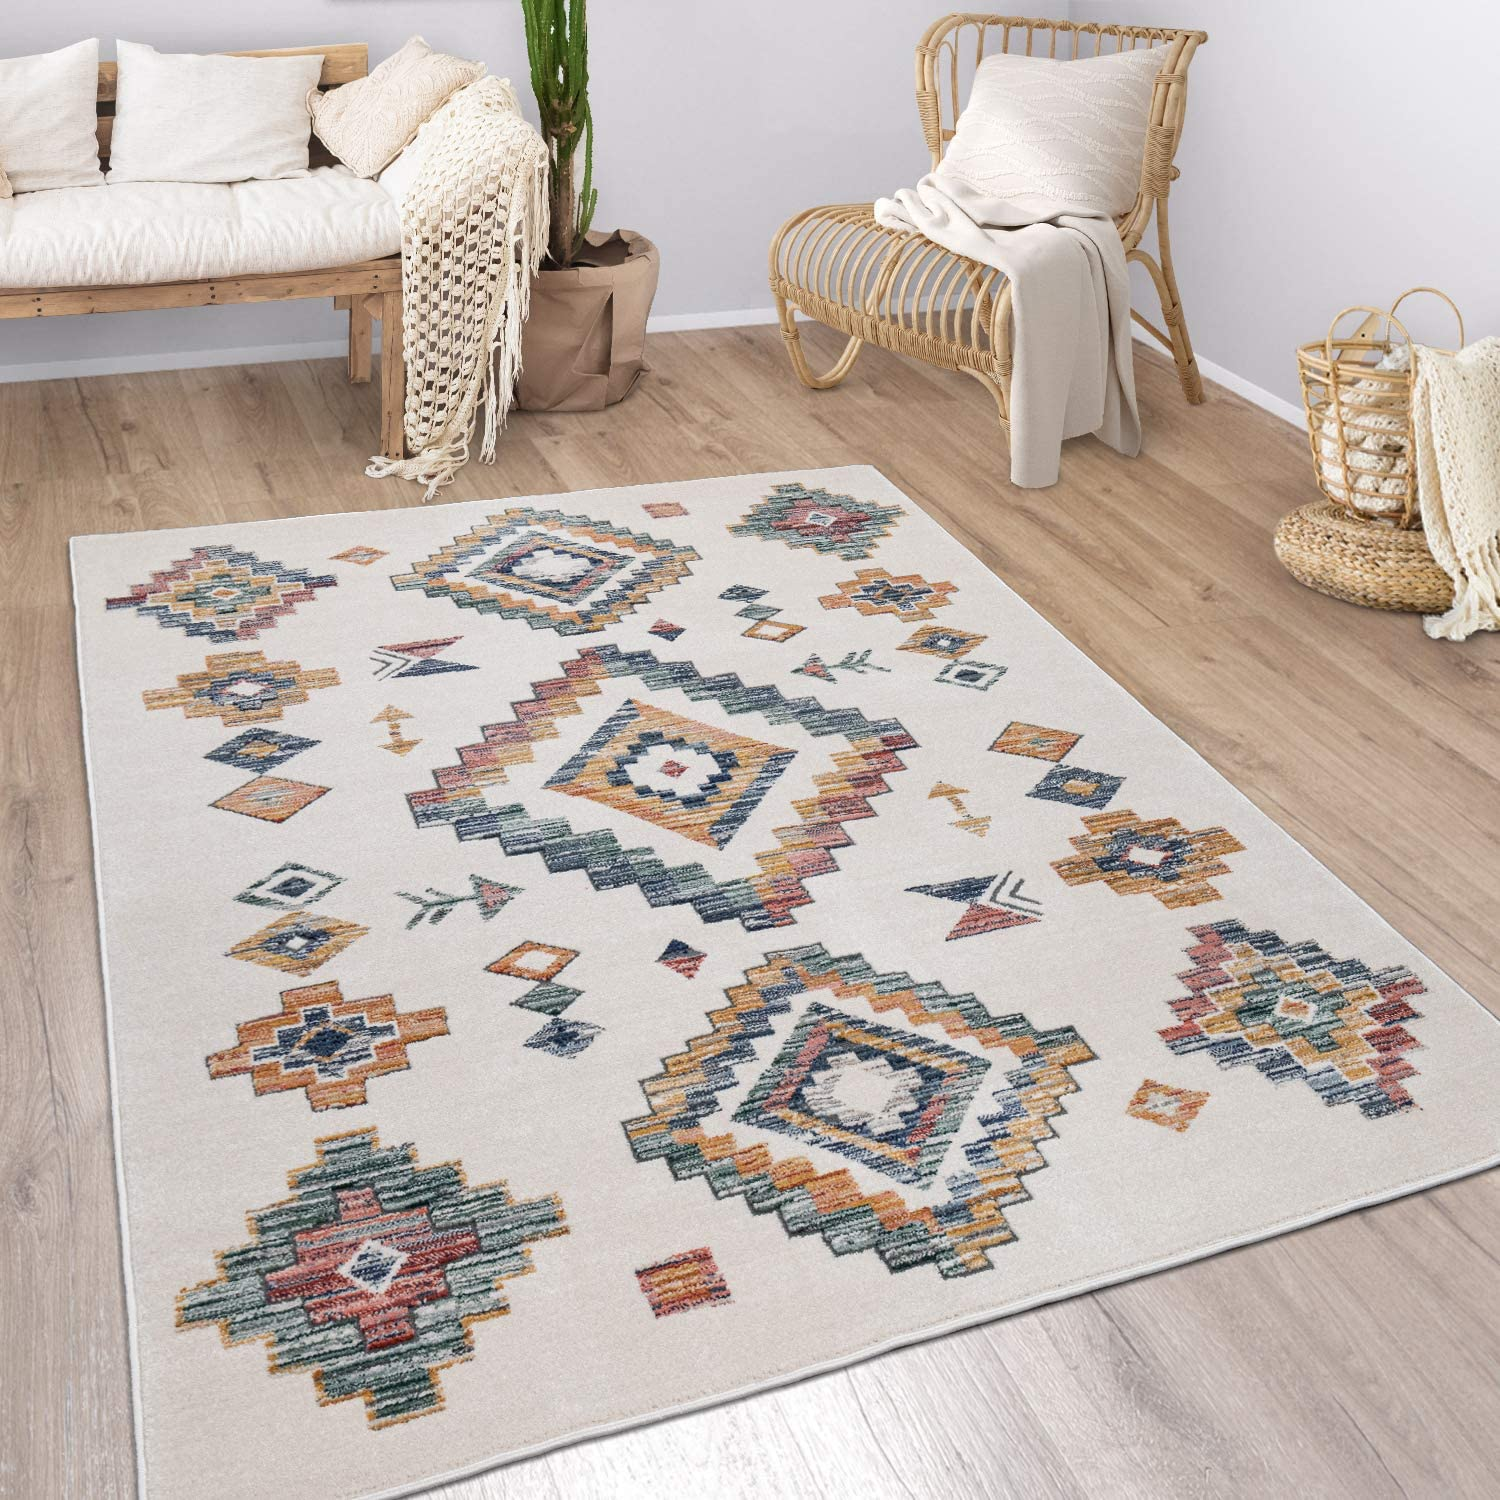 Modern Rug Ethnic Attention brand Year-end gift Design with Colorful Si Cream in Boho Pattern